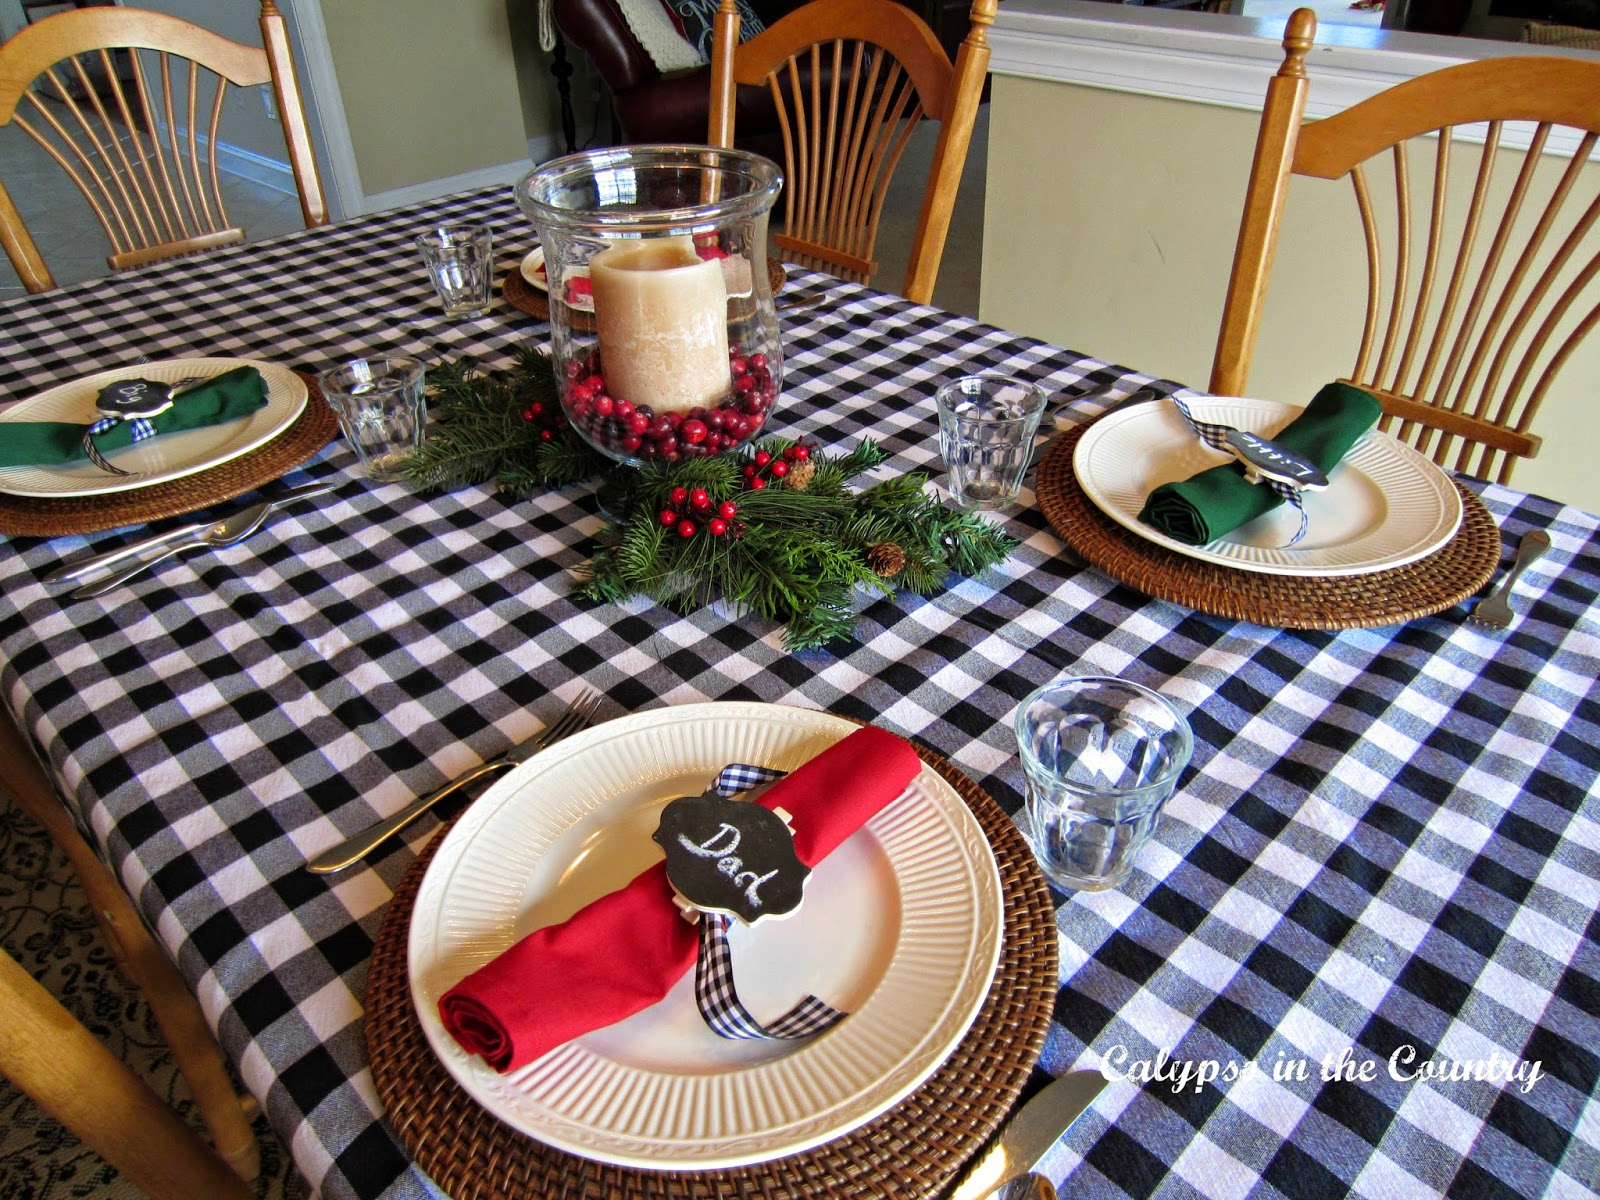 Black and White buffalo checked tablecloth